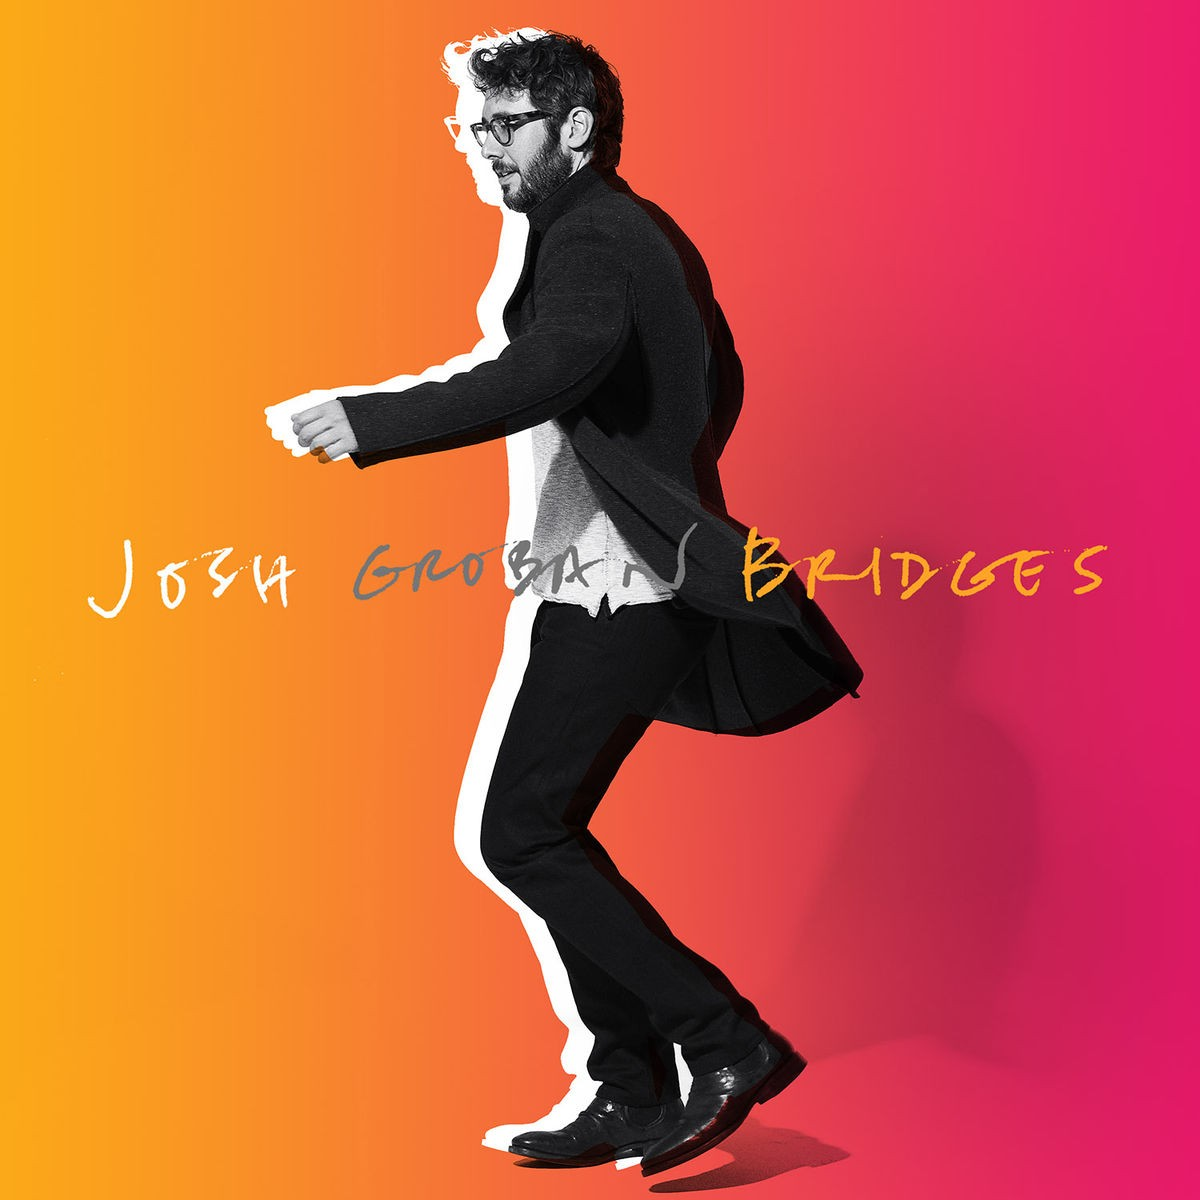 Josh Groban - Bridges CD - WBCD 2386